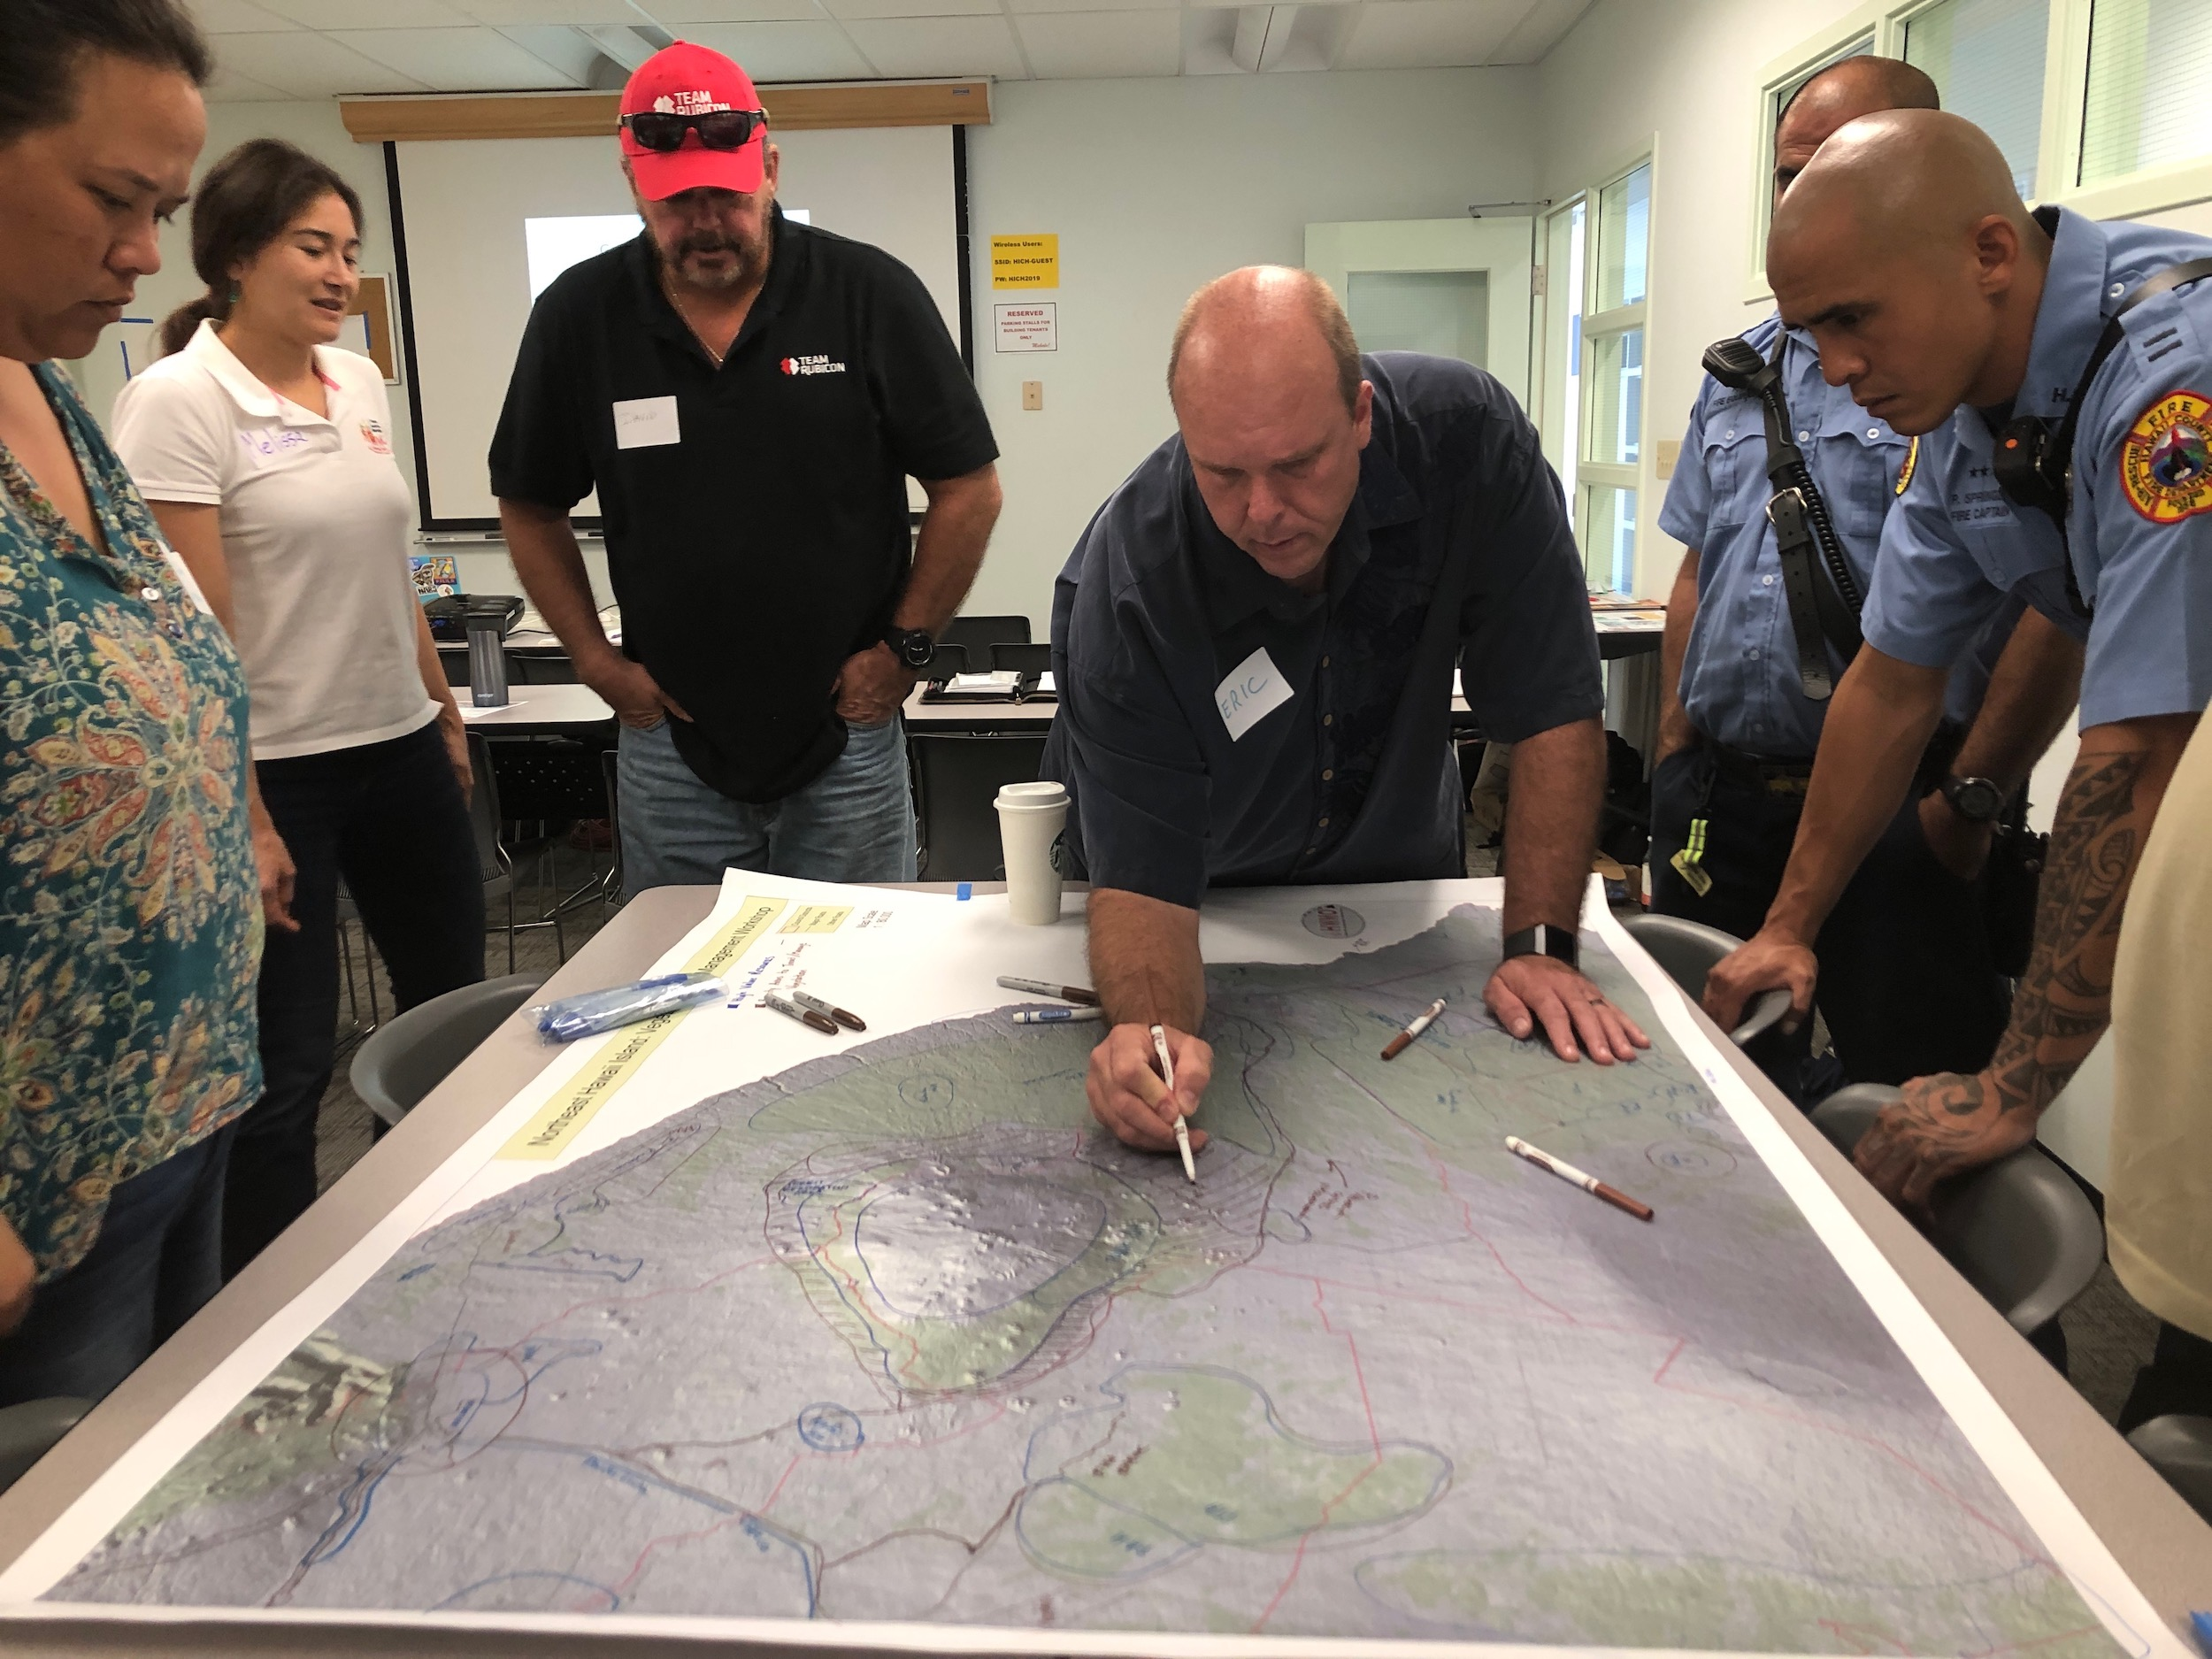 Hawaii Island Hilo Vegetative Fuels Management Collaborative Action Planning Workshop_2_22_2019_24.jpg